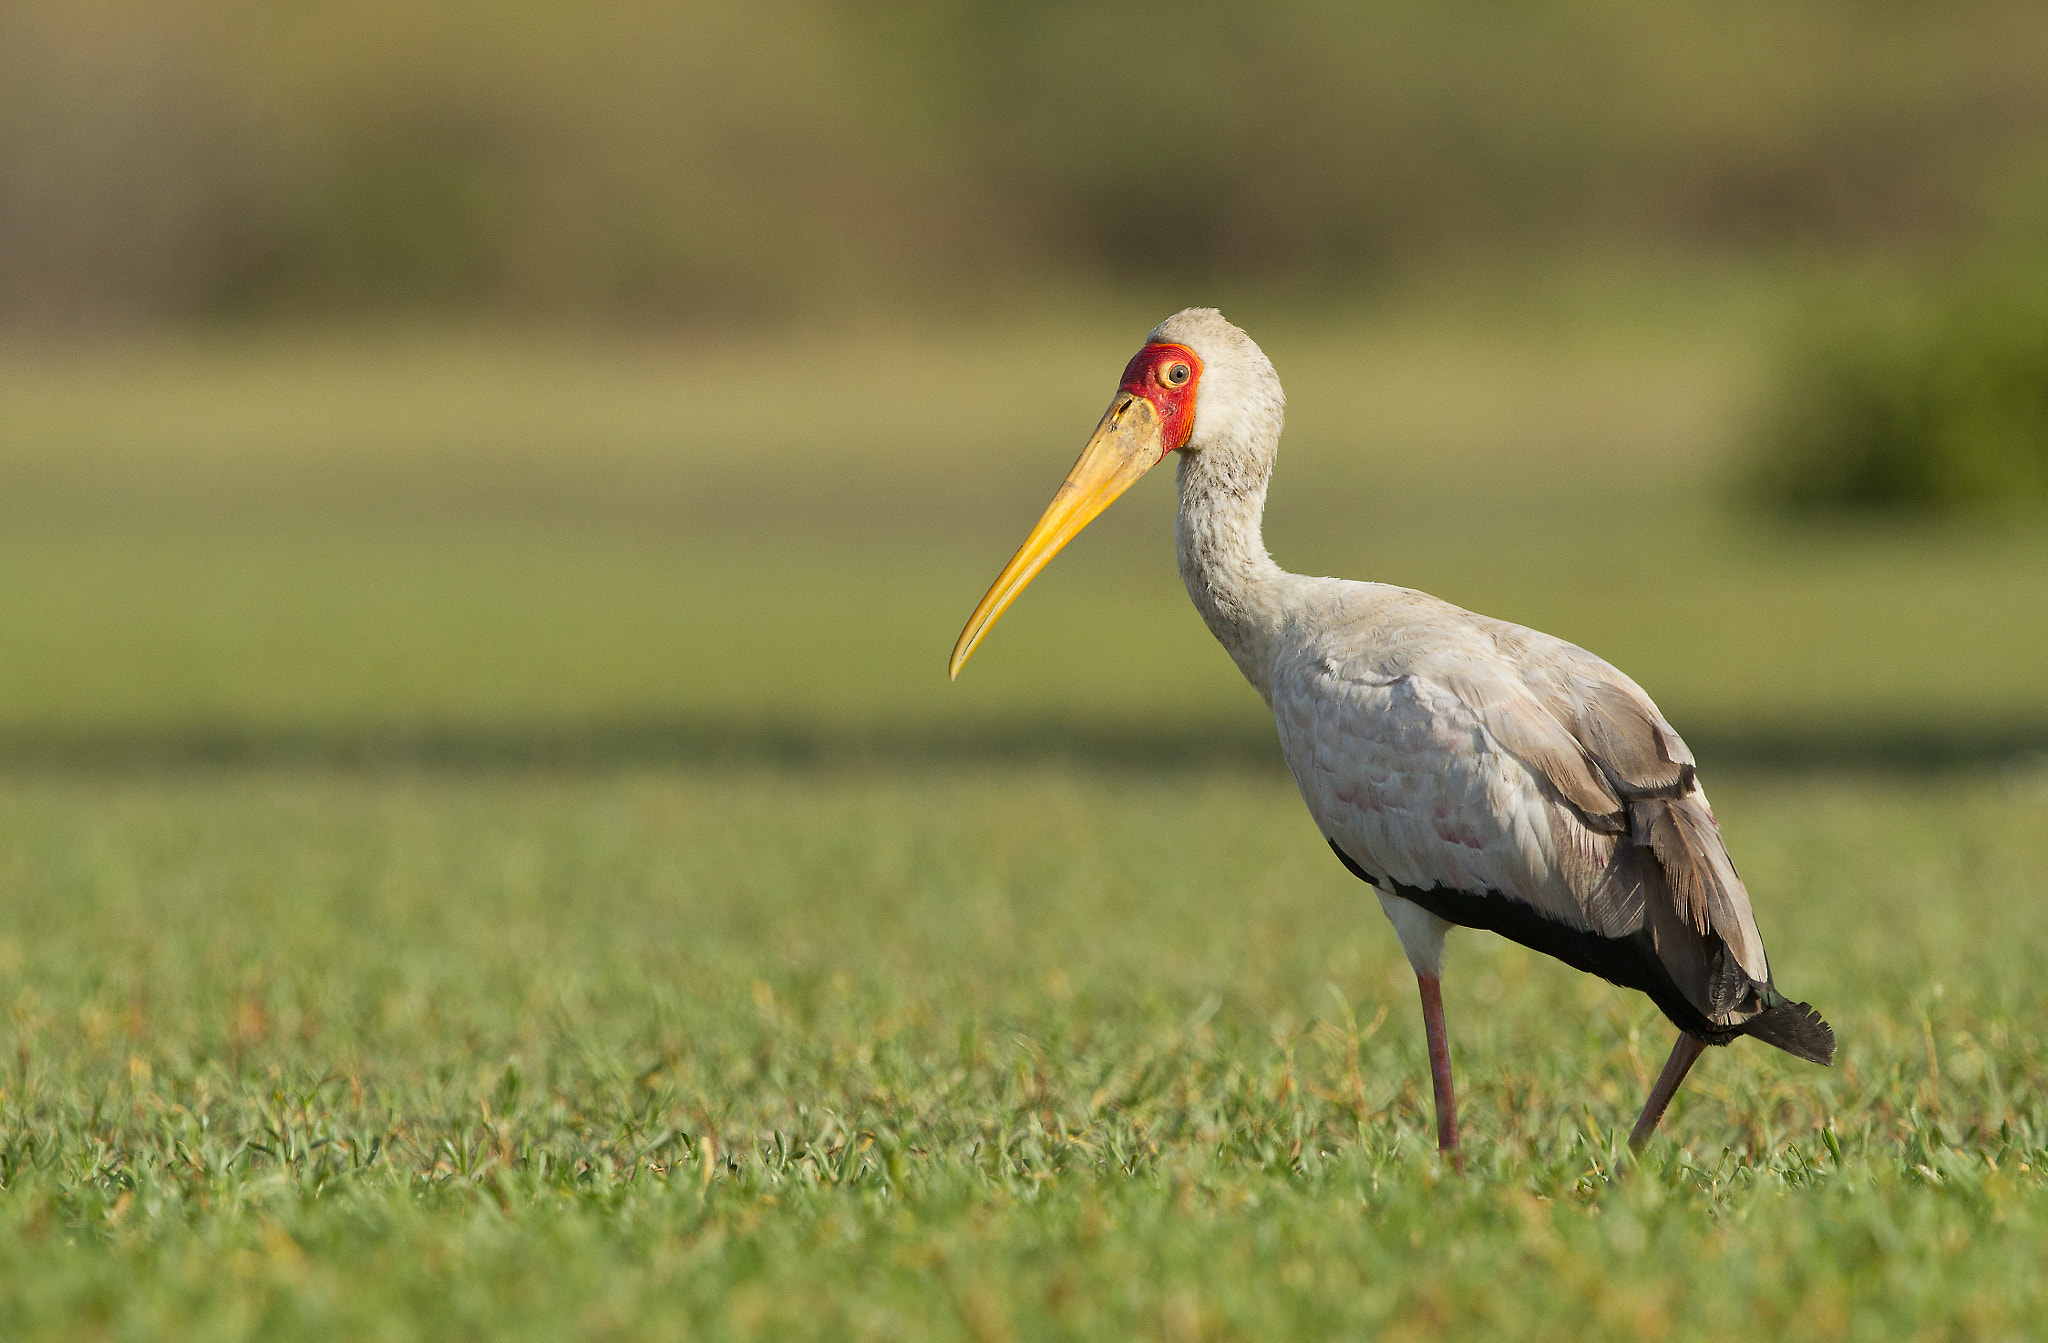 Photograph Yellow-billed Stork by Ian Billenness on 500px